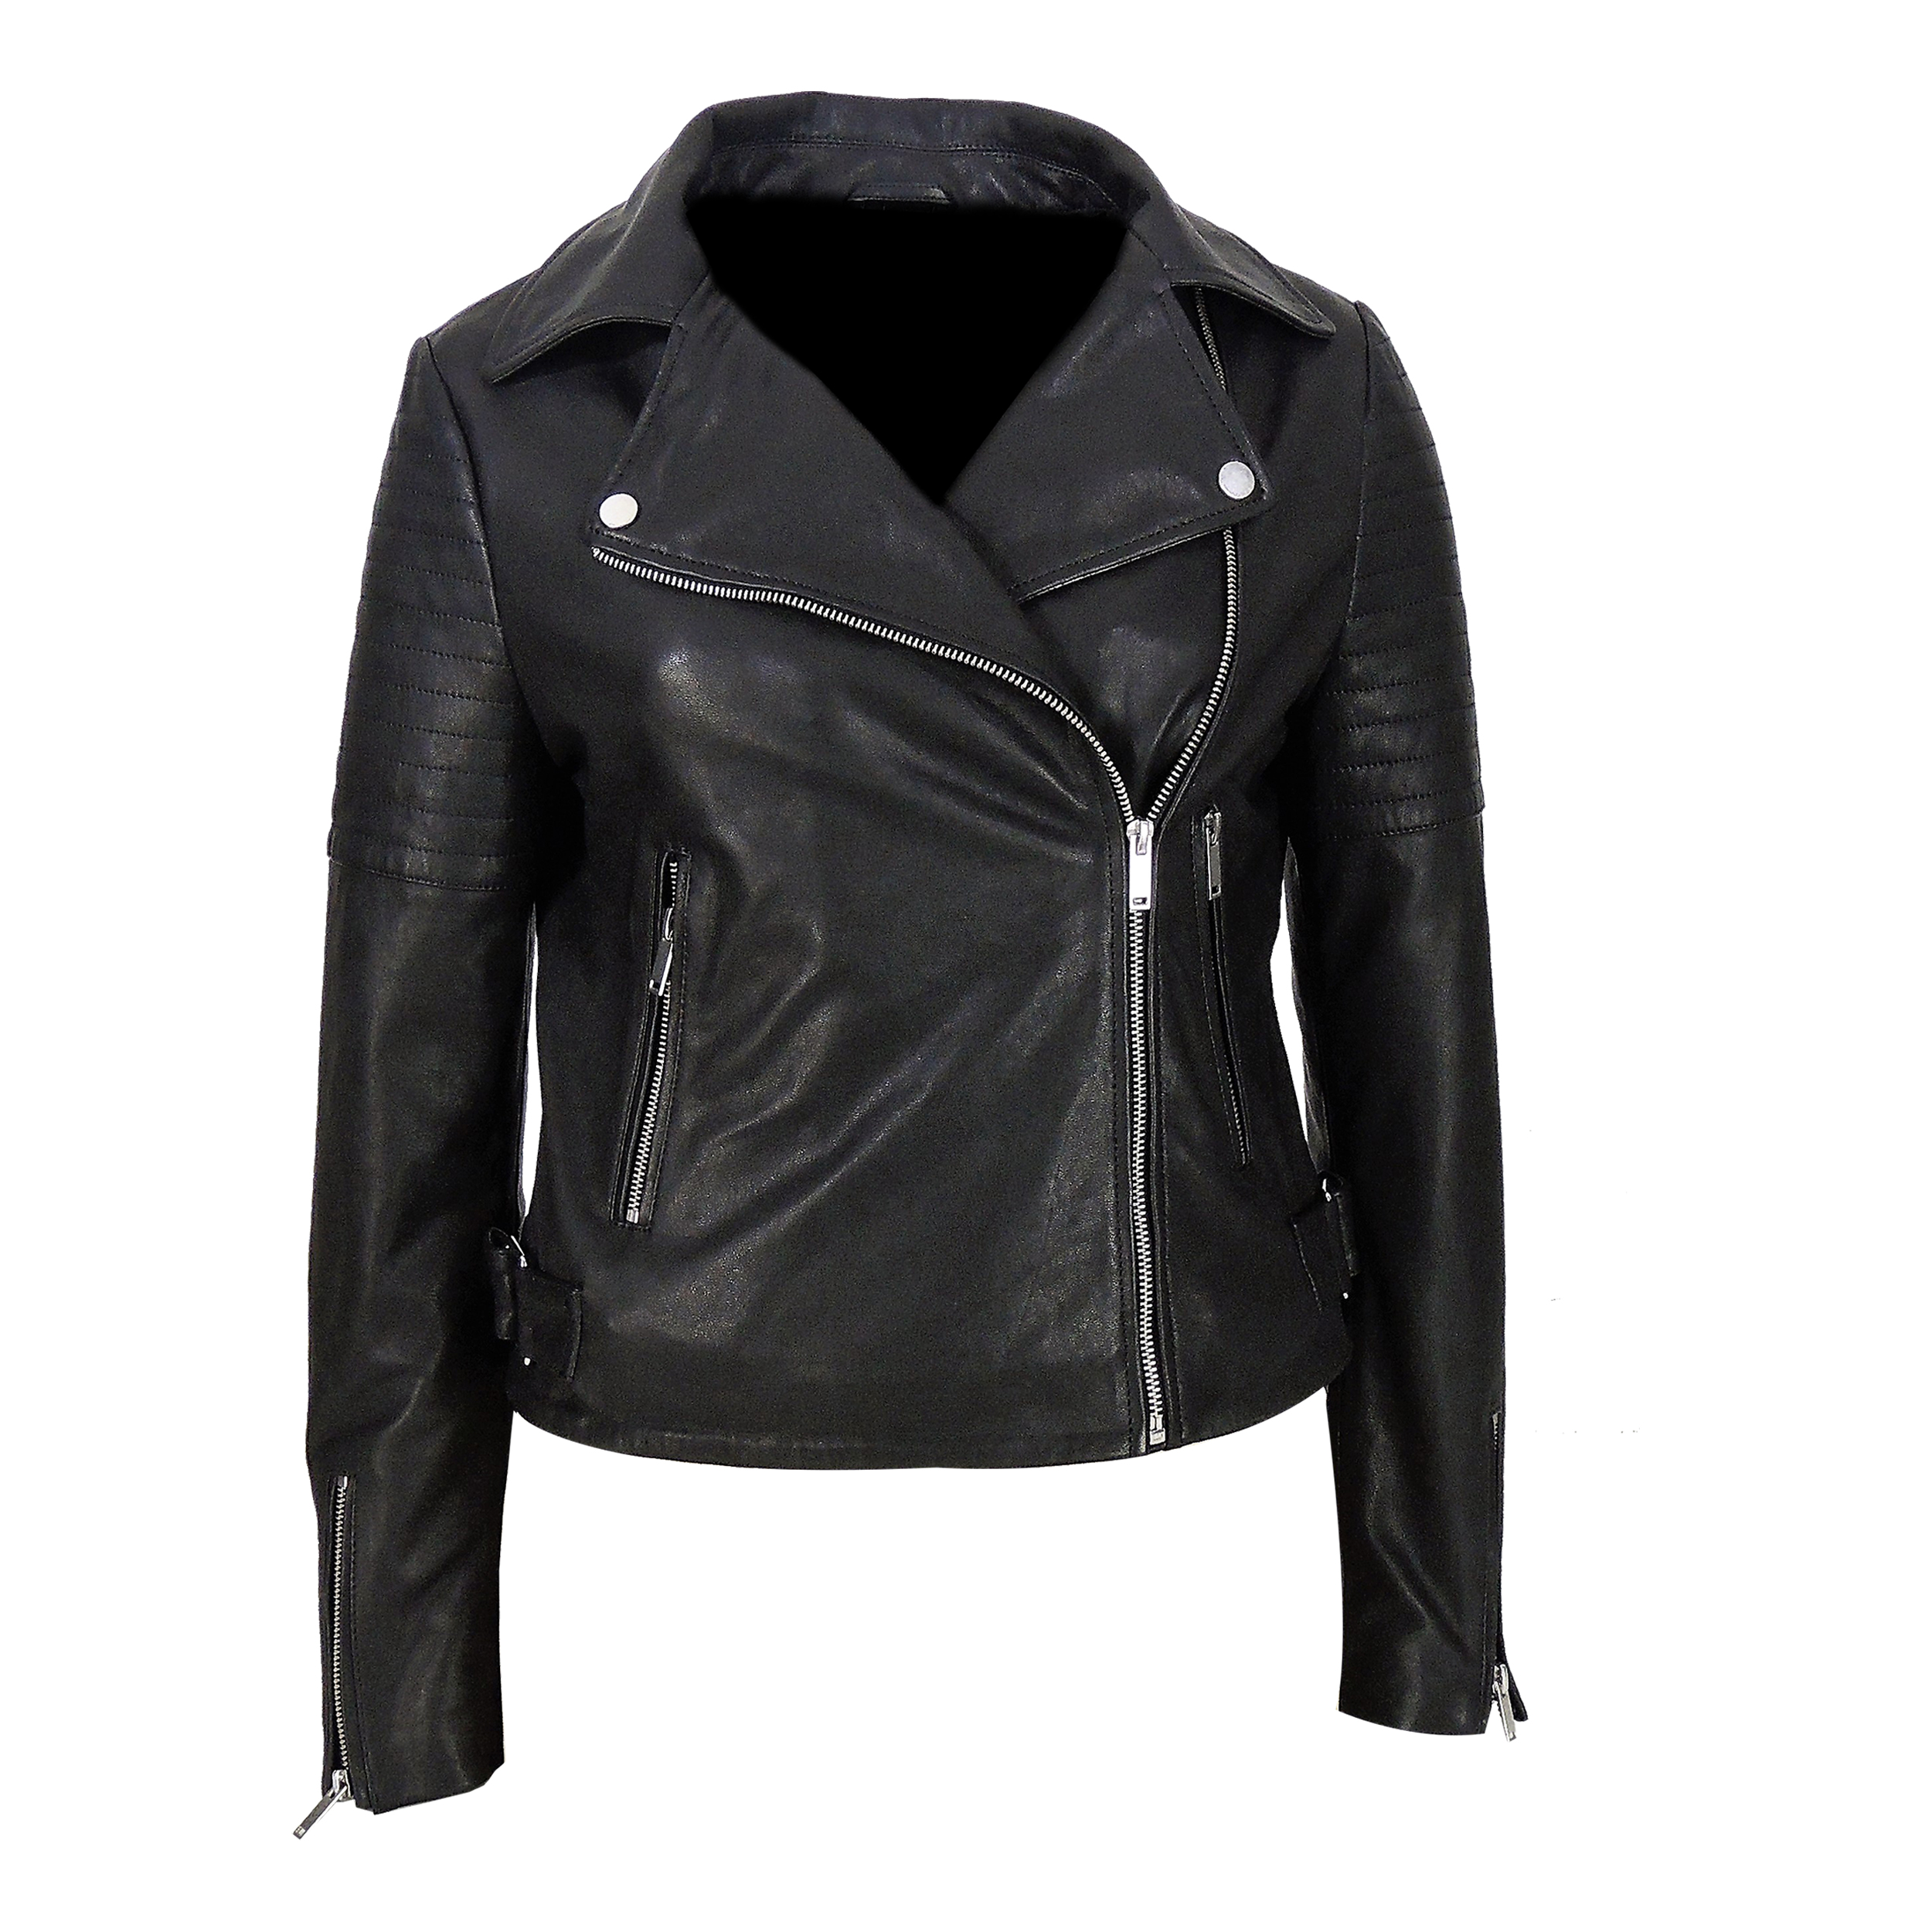 f76aeef75e AUBREY WOMENS DISTRESSED LEATHER JACKET on Storenvy